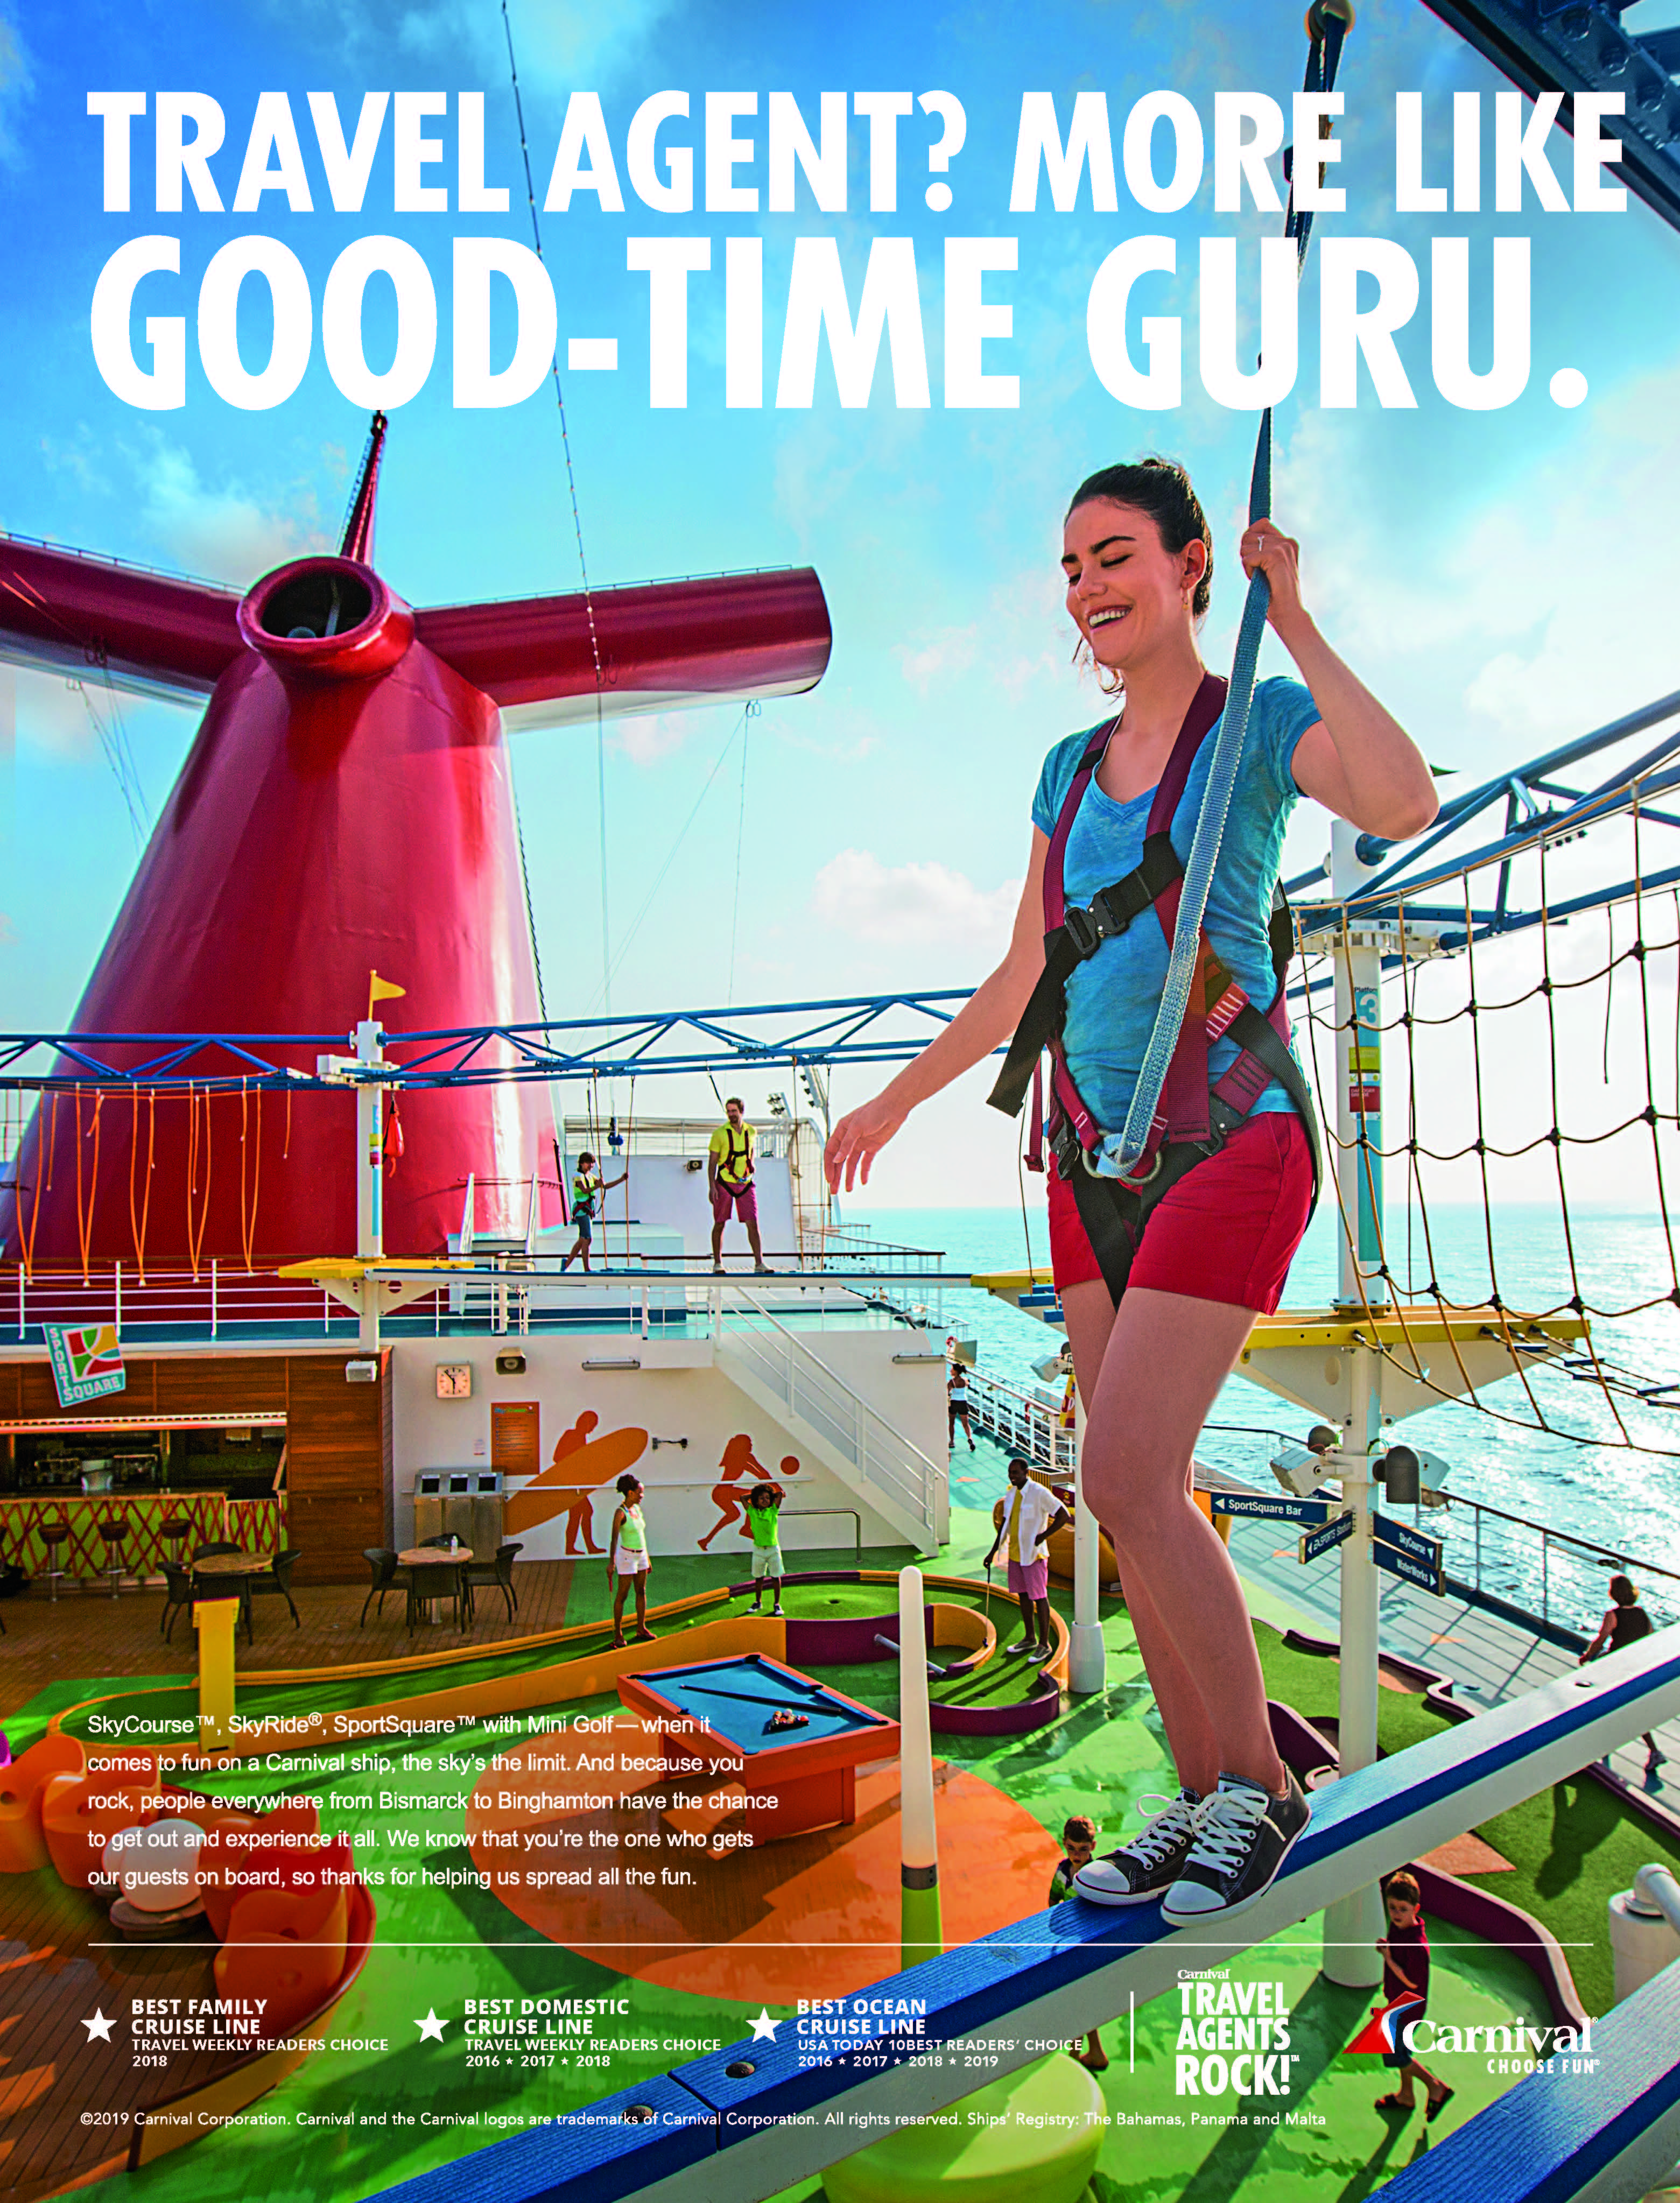 Carnival Cruise Line Celebrates Travel Agent Heroes in New Trade Ads